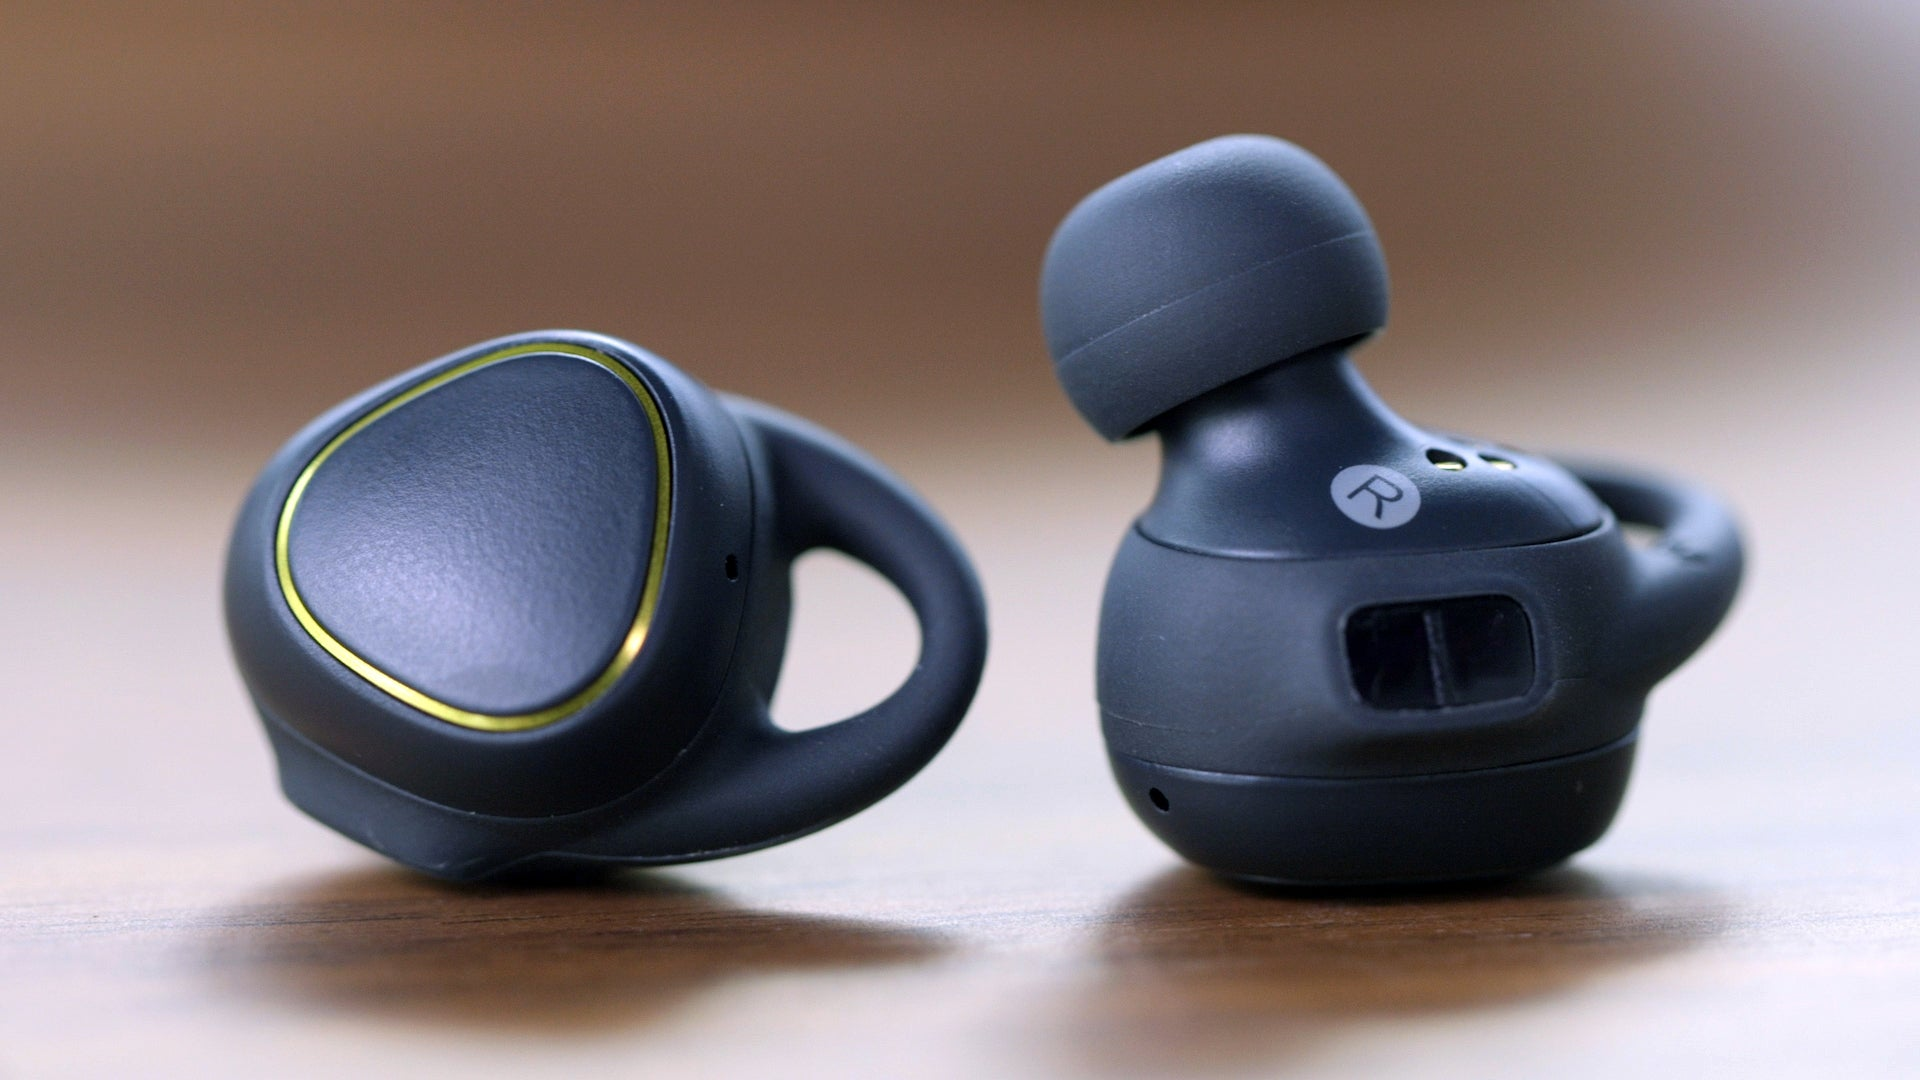 Samsung Gear IconX earbuds Review: Good bass, 4GB storage, but nagging  drawbacks. - Front Page - PC World Australia